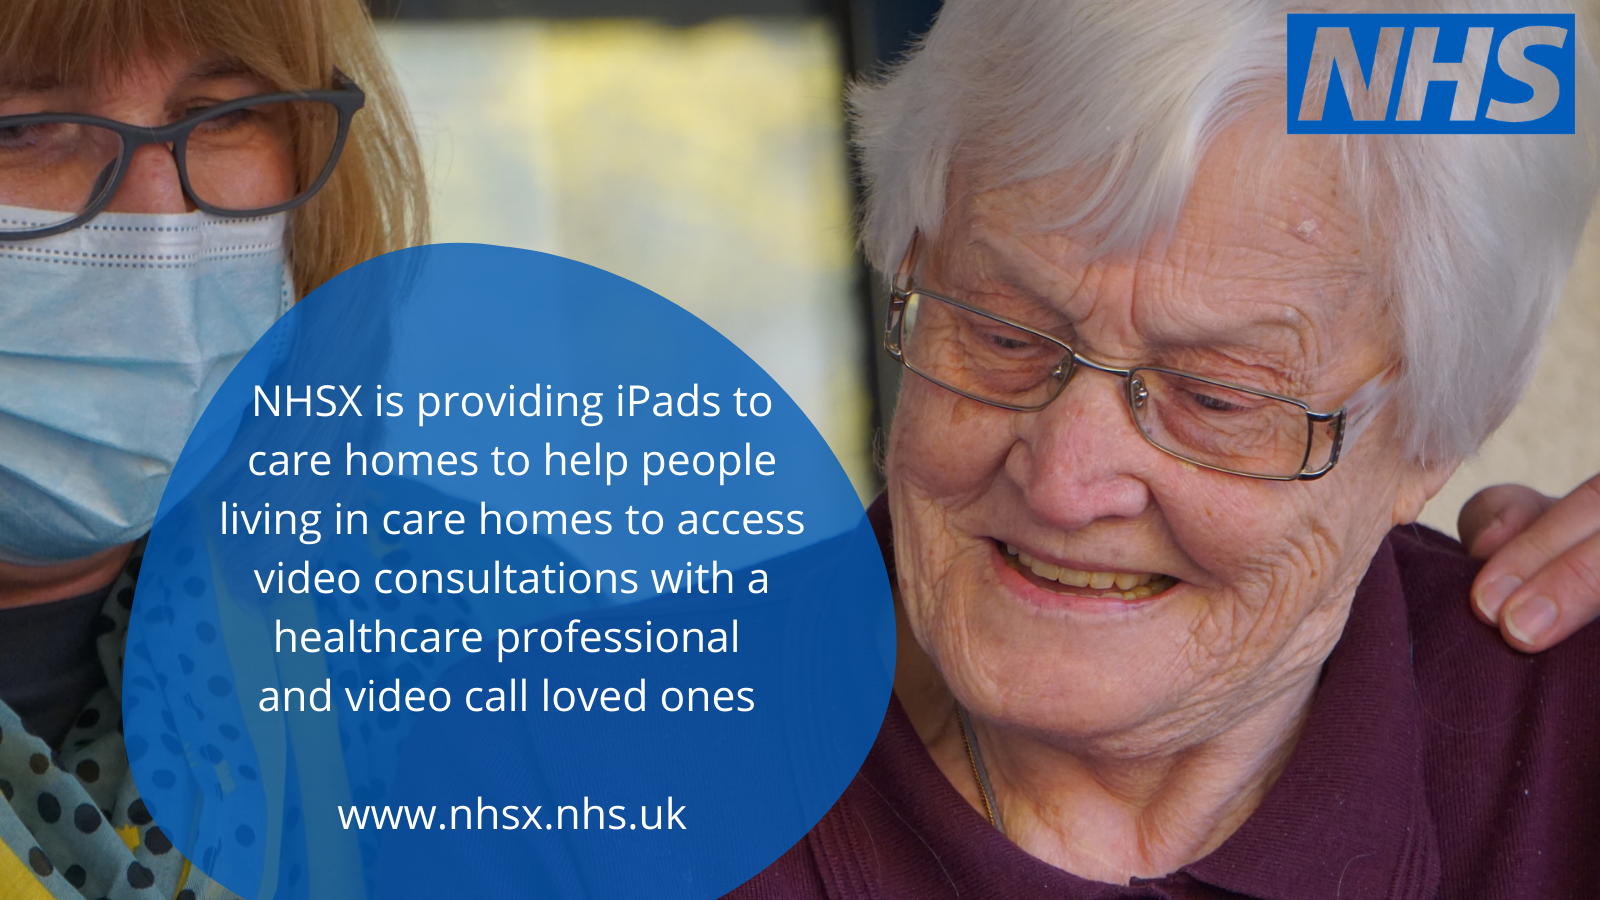 NHSX initiative offers free iPad for care homes